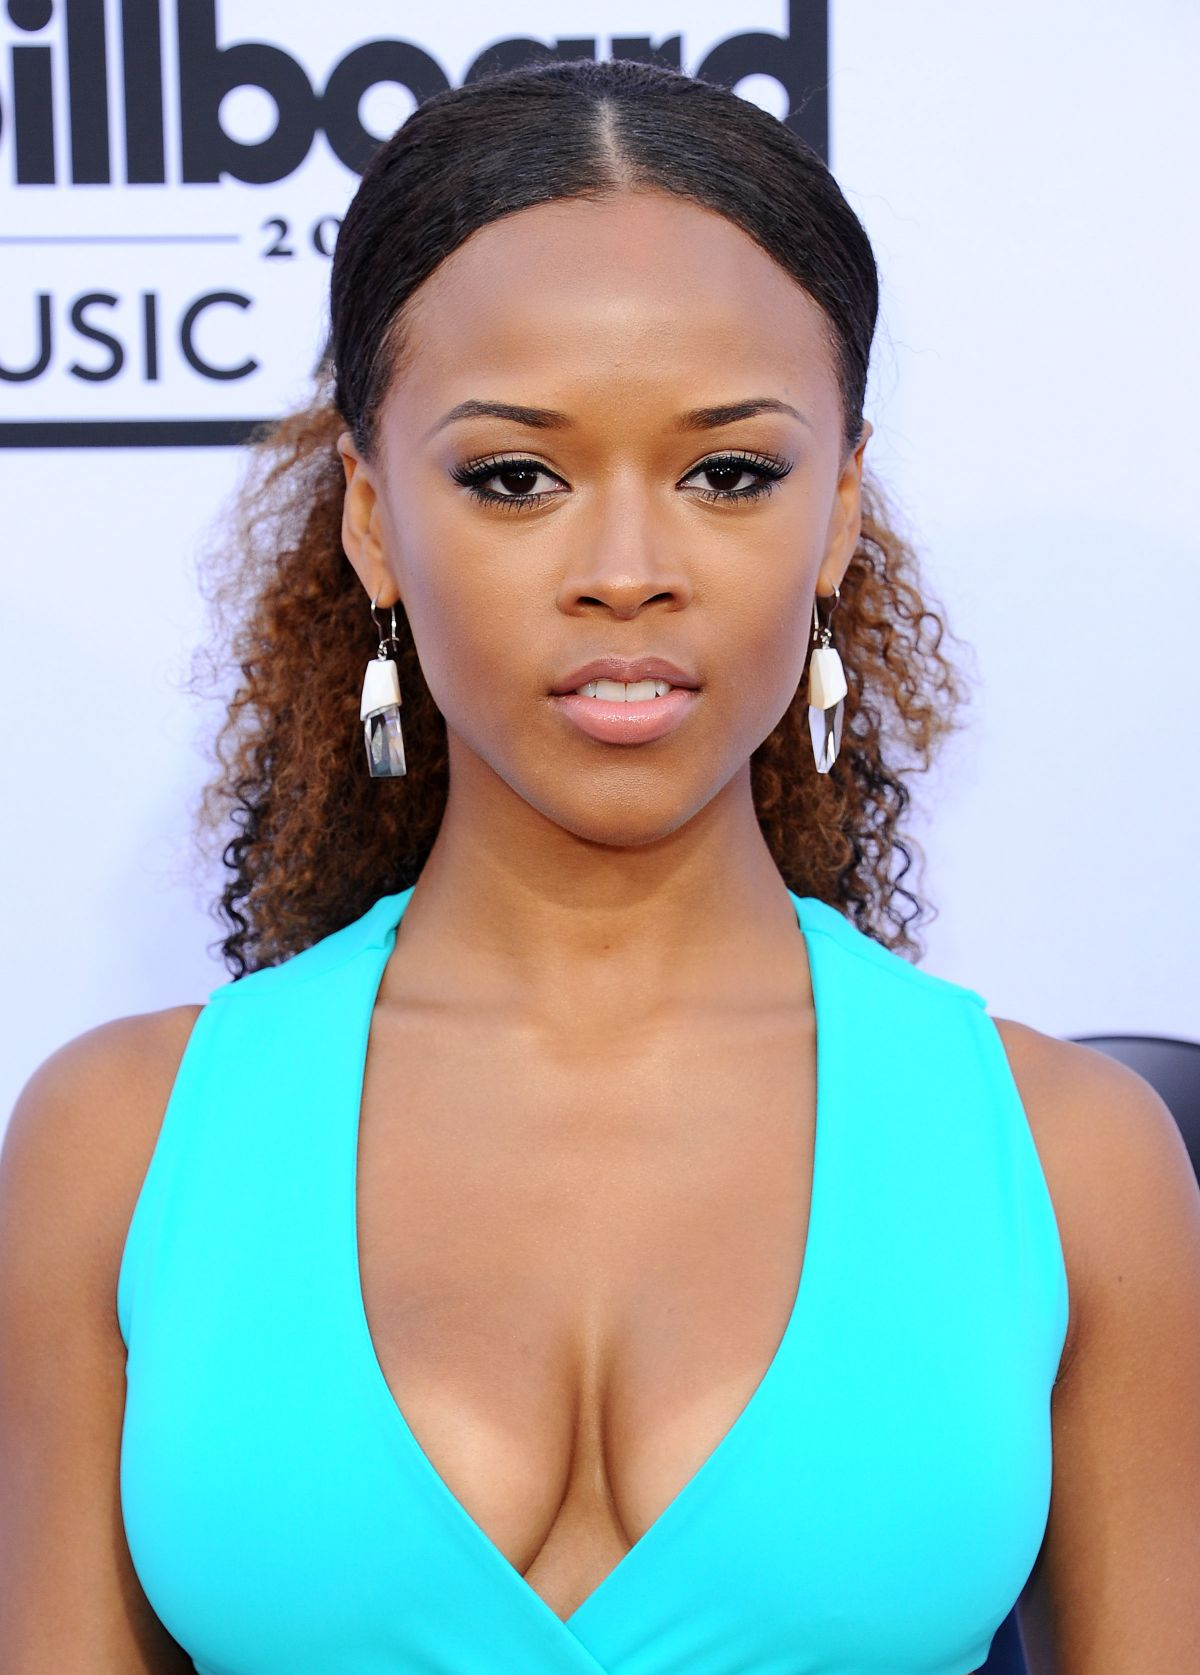 Cleavage Serayah McNeill naked (25 photo), Topless, Sideboobs, Twitter, cleavage 2017